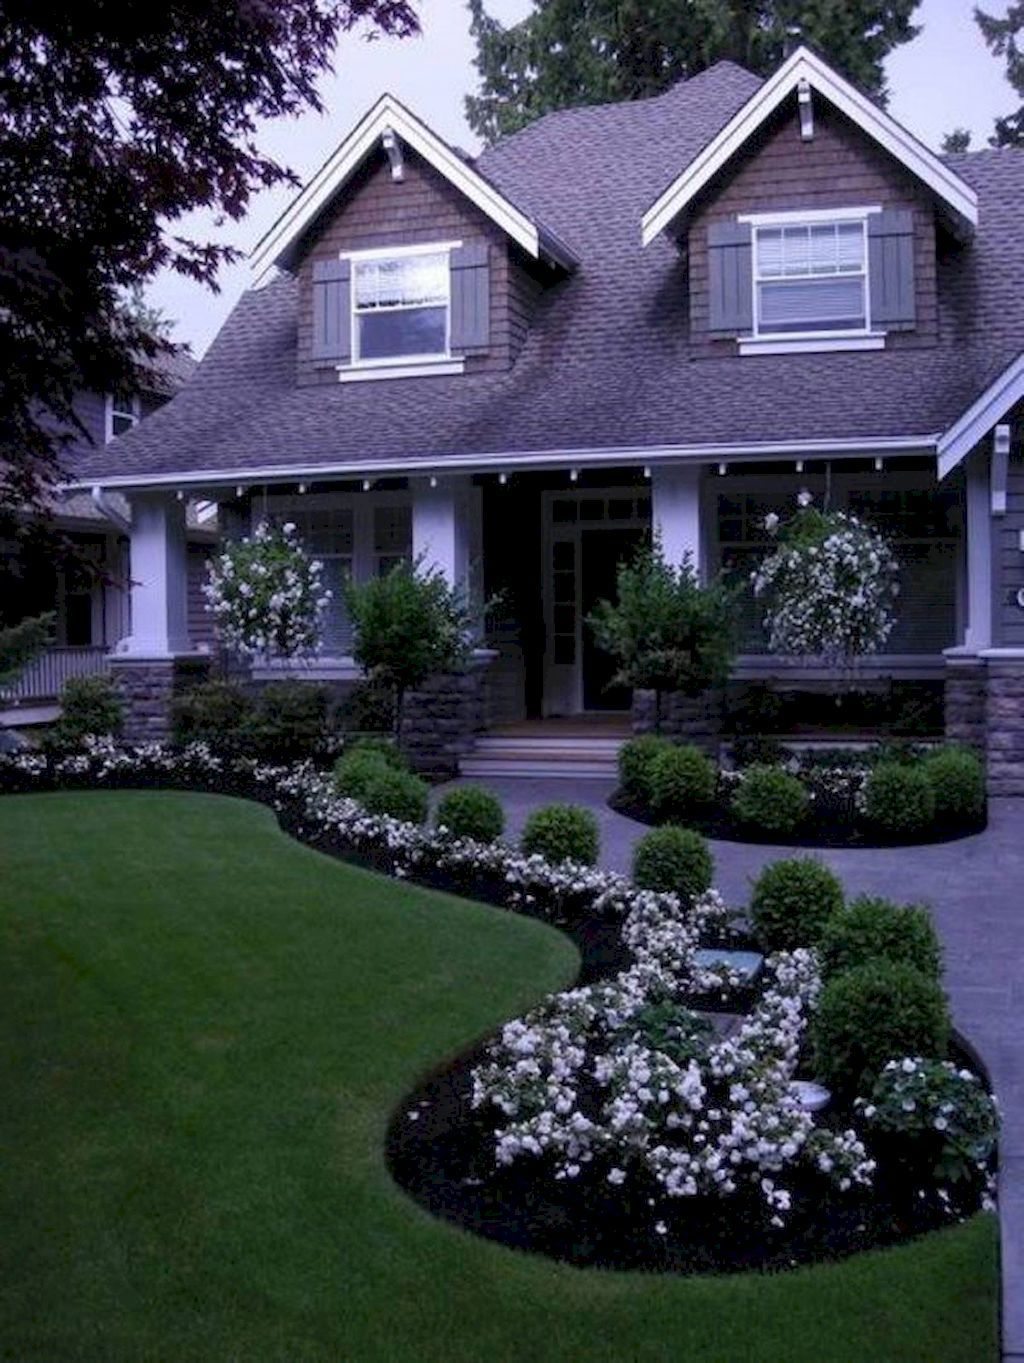 40 beautiful front yard landscaping ideas yard for Landscape front of house